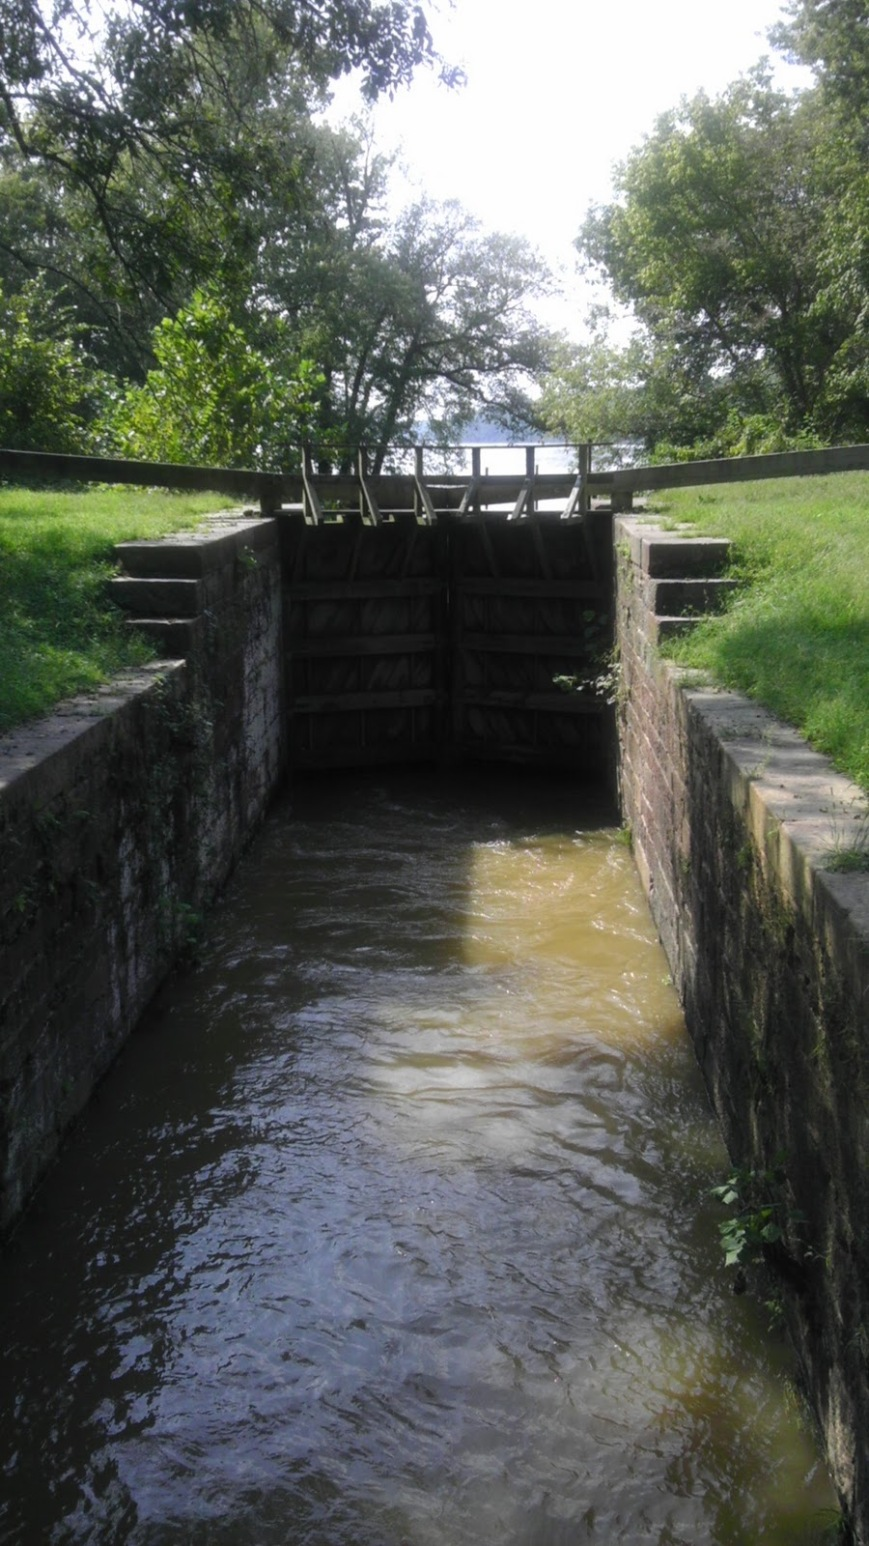 C&O Canal: Riley's Lock